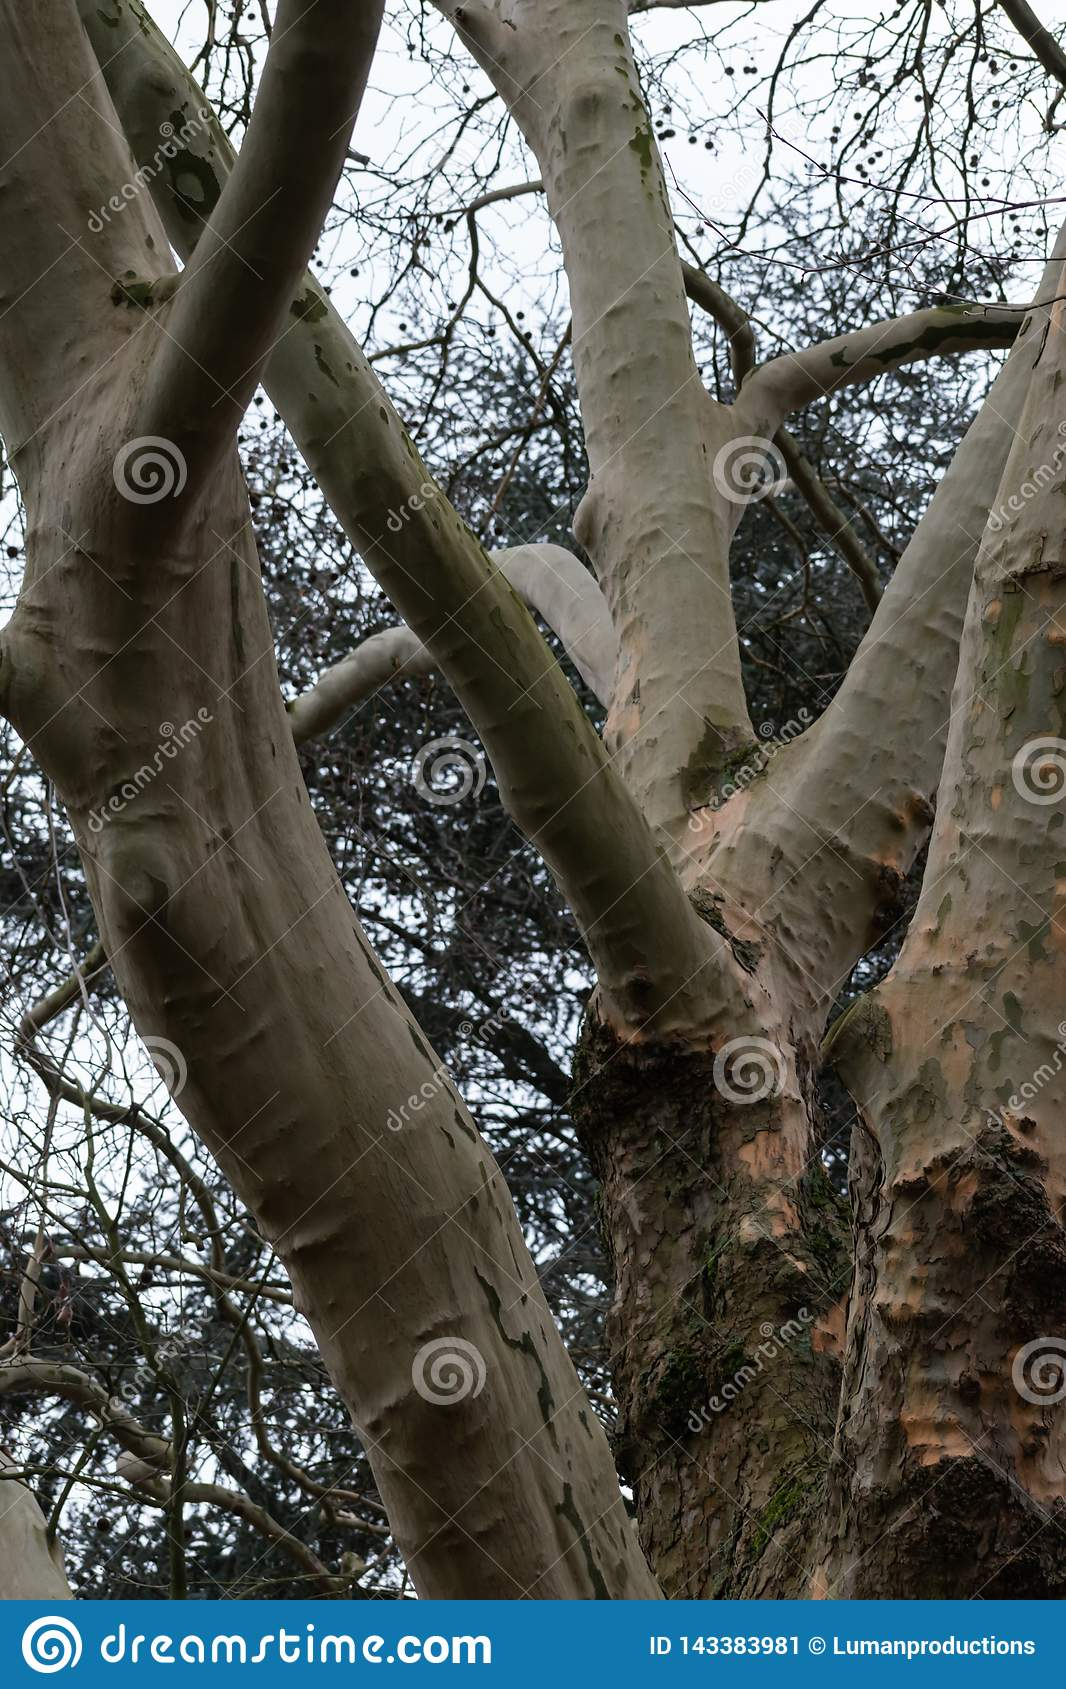 Branching tree in the park